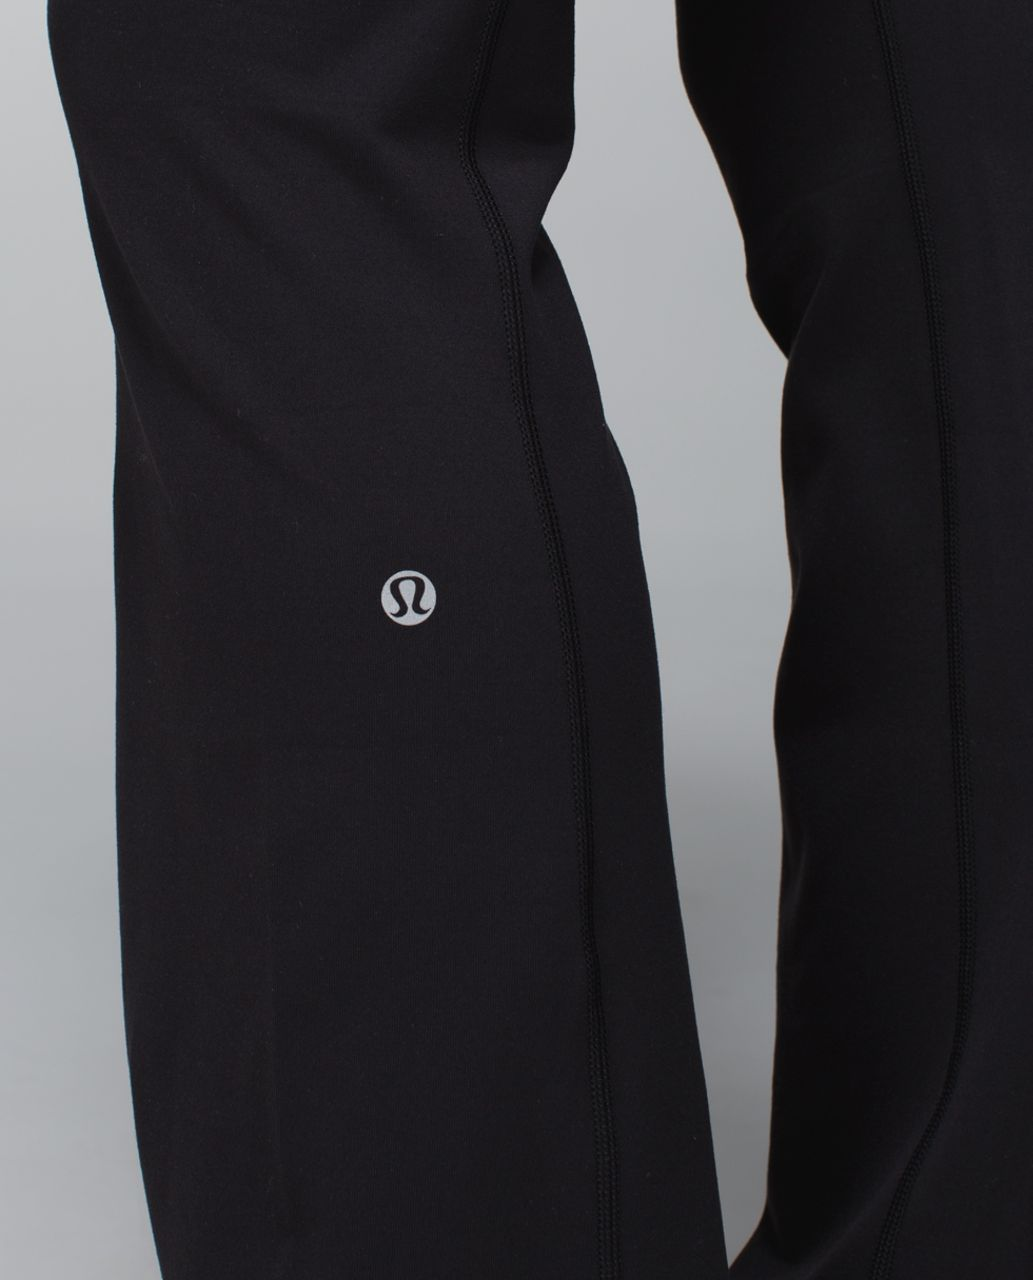 Lululemon Groove Pant *Full-On Luon (Regular) - Black / Fa14 Quilt 5